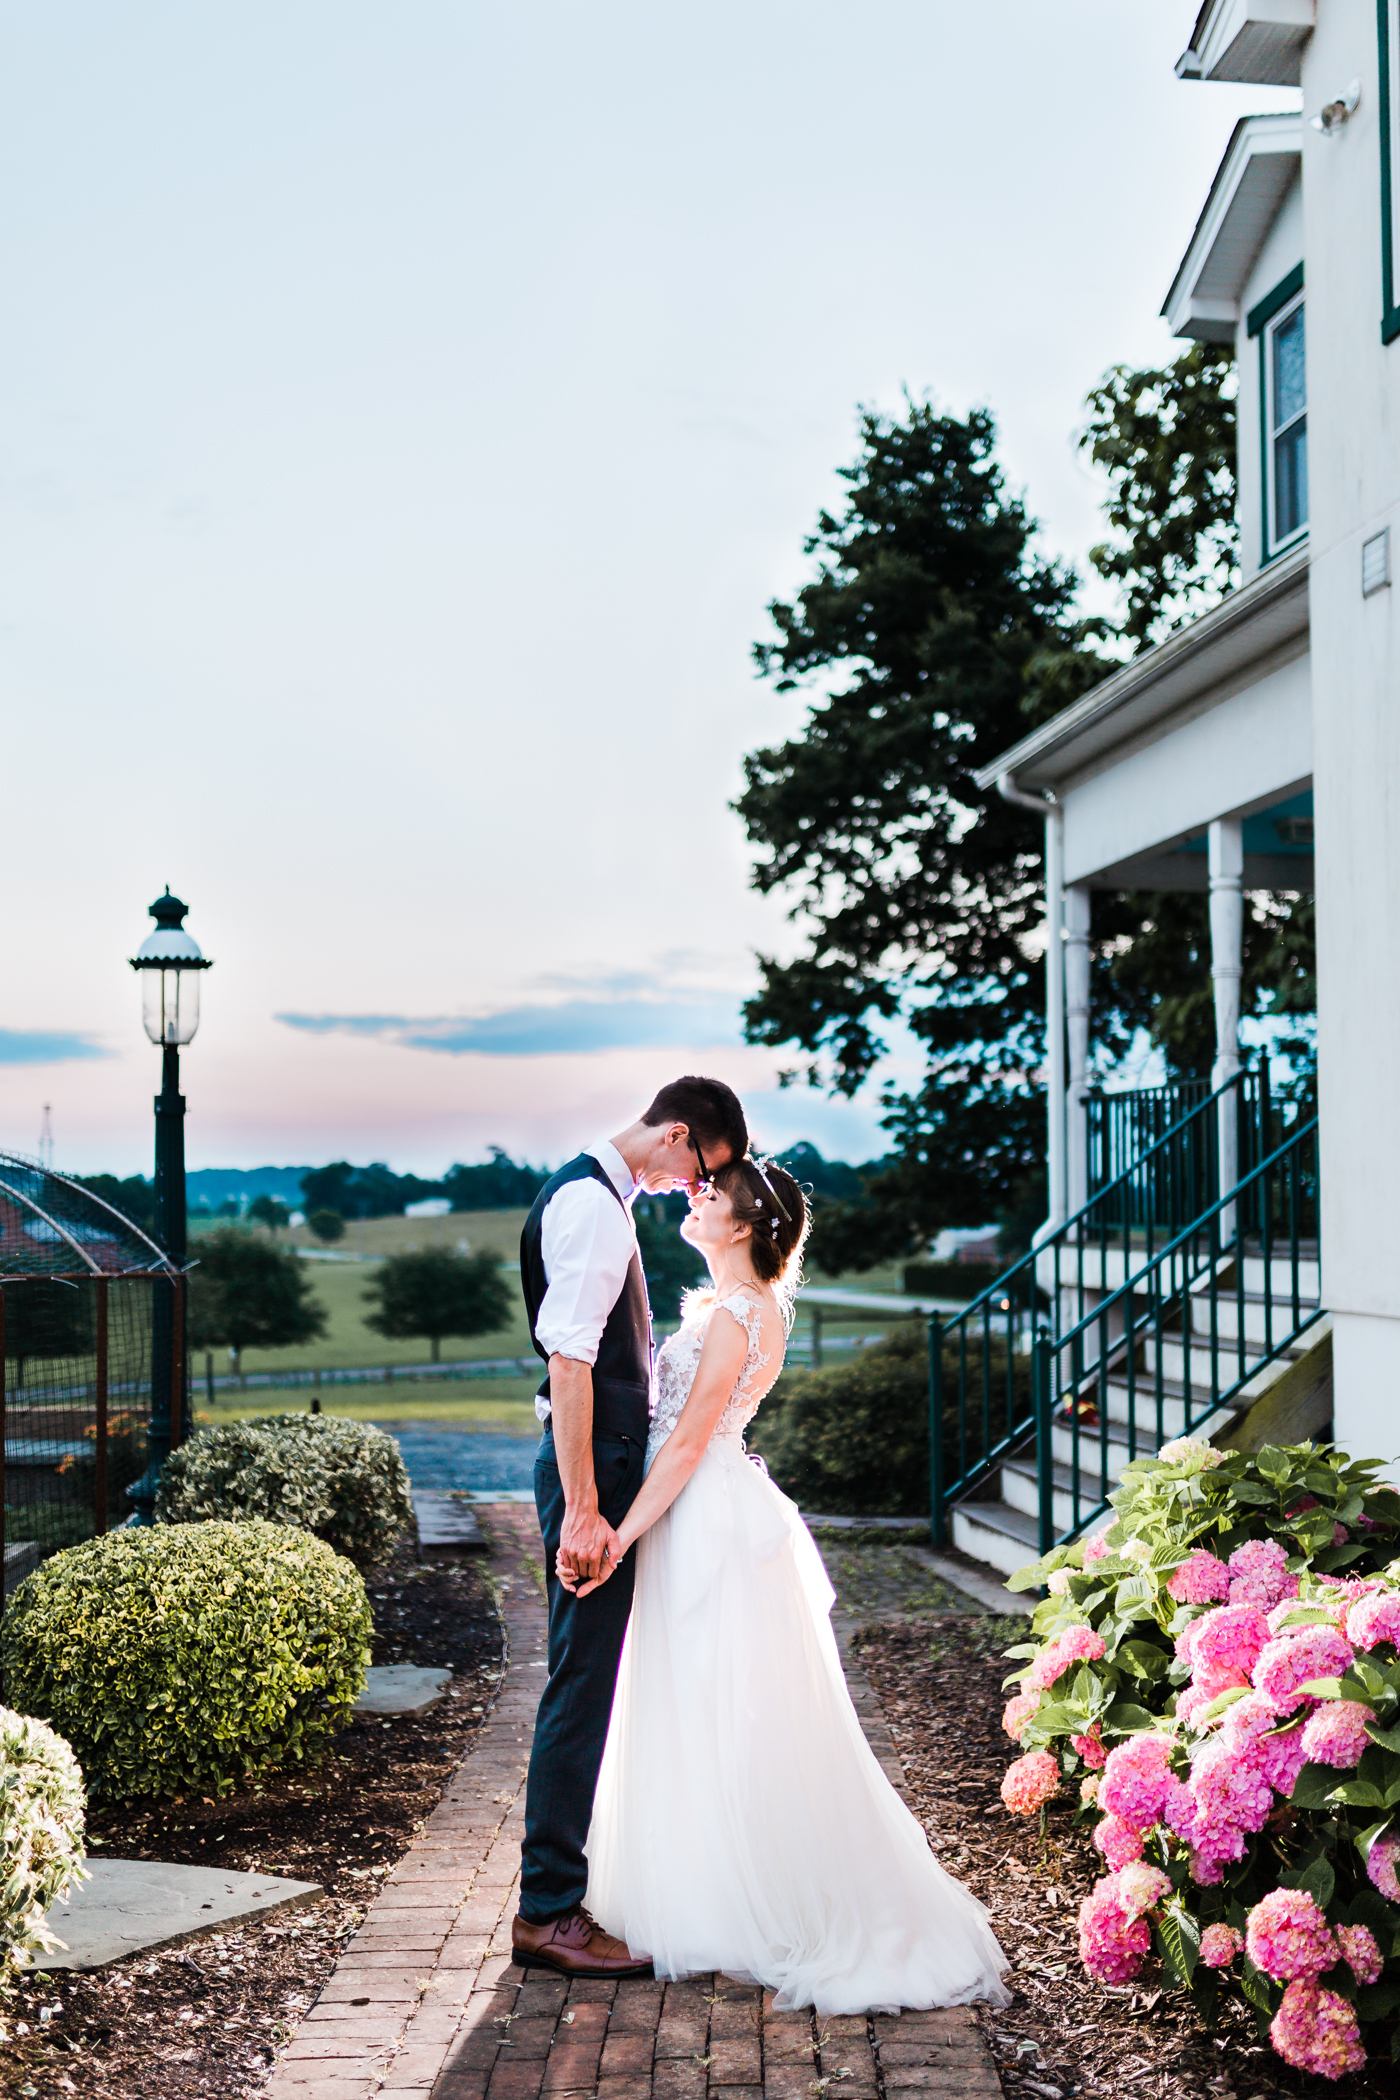 colorful rustic wedding - romantic bride and groom photos - night photography - maryland